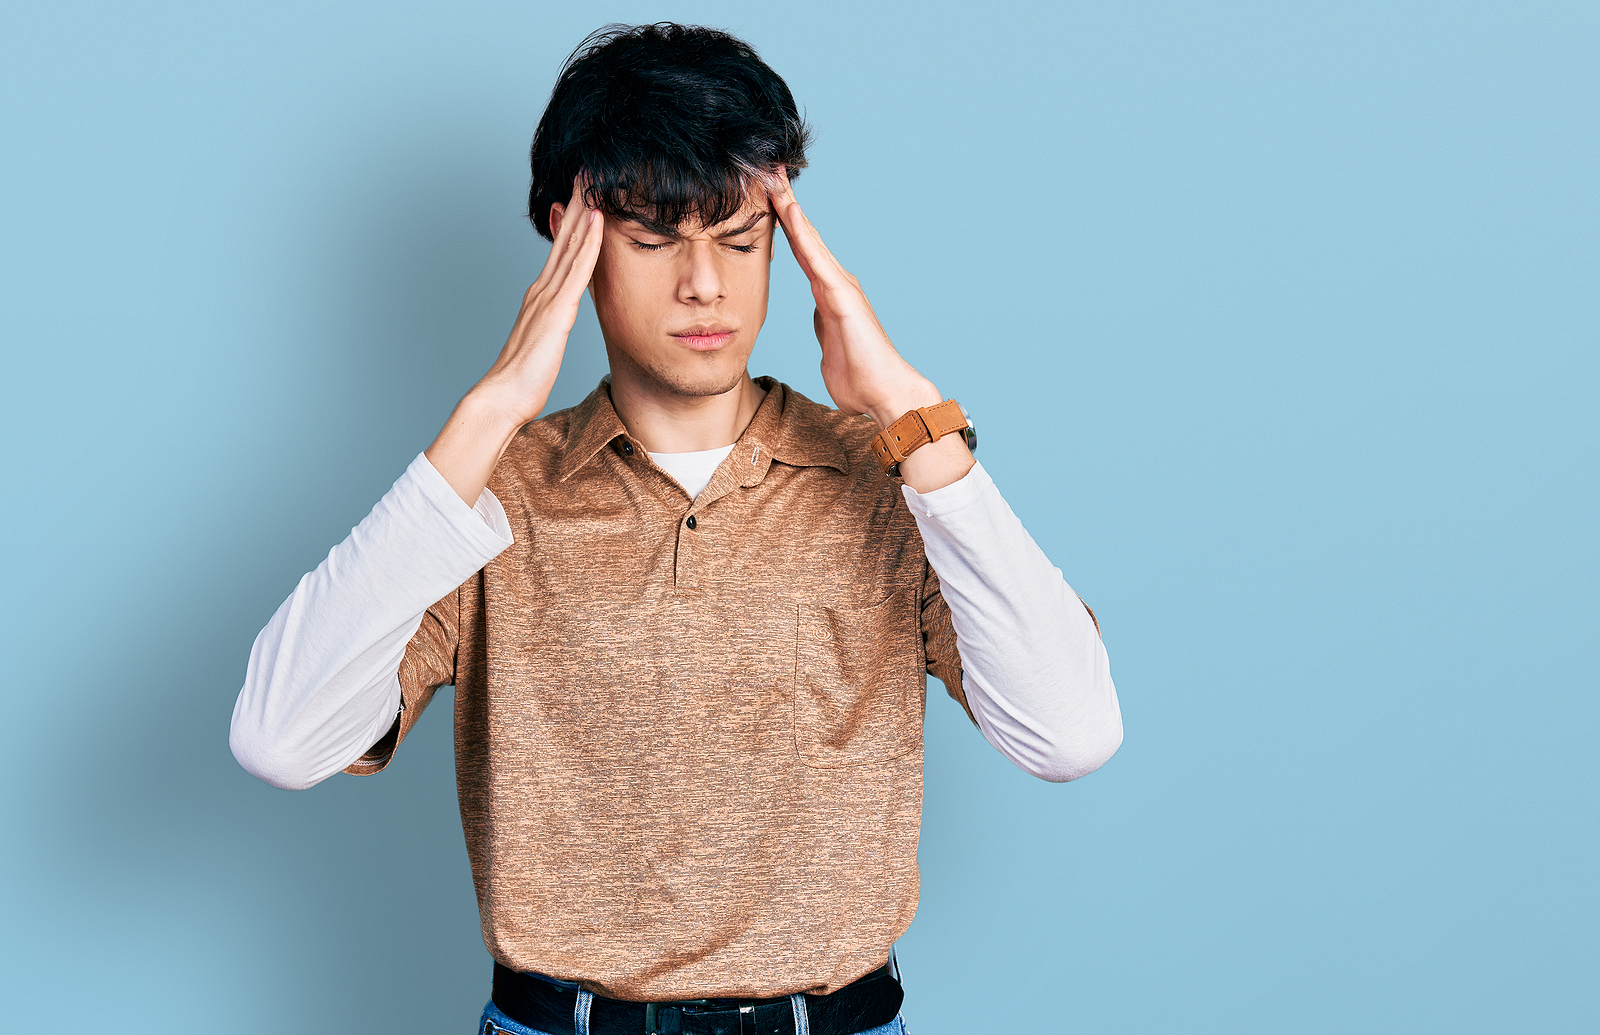 mage of a young hipster guy wearing 90s long sleeve shirt and collar shirt, with his hands on his head looking frustrated.